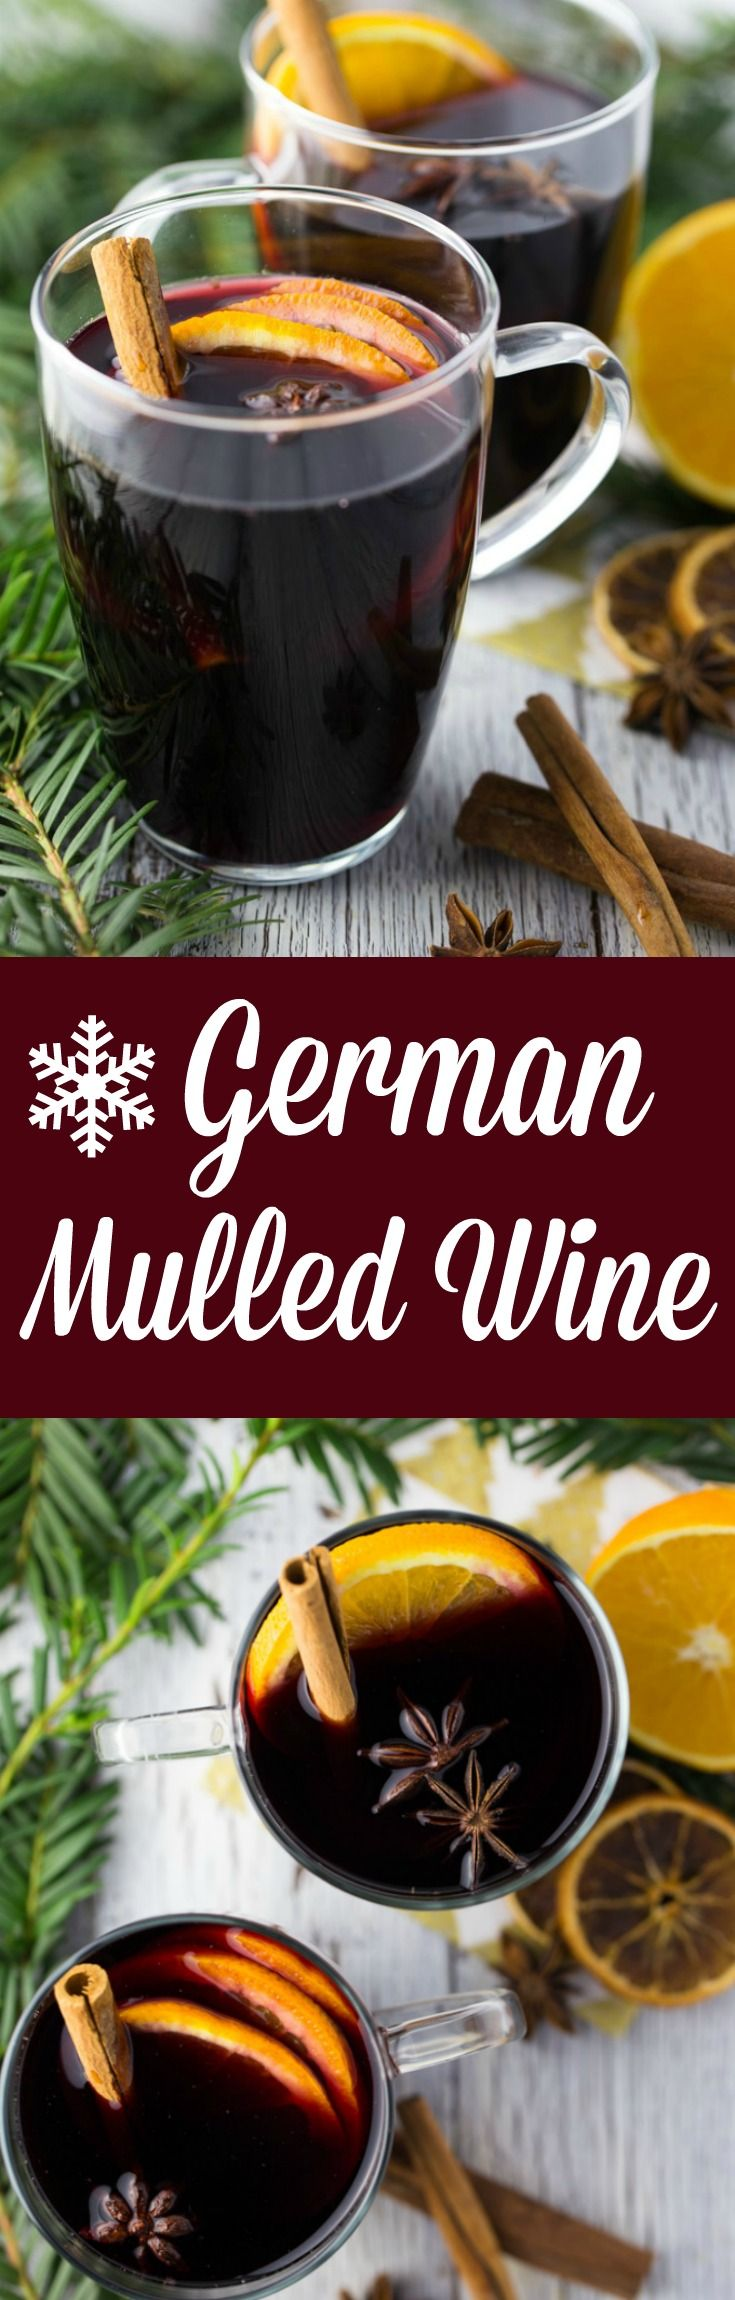 his German mulled wine is the perfect Christmas drink! It's prepared from red wine that is heated and spiced with Christmas spices. Ready in 10 minutes!